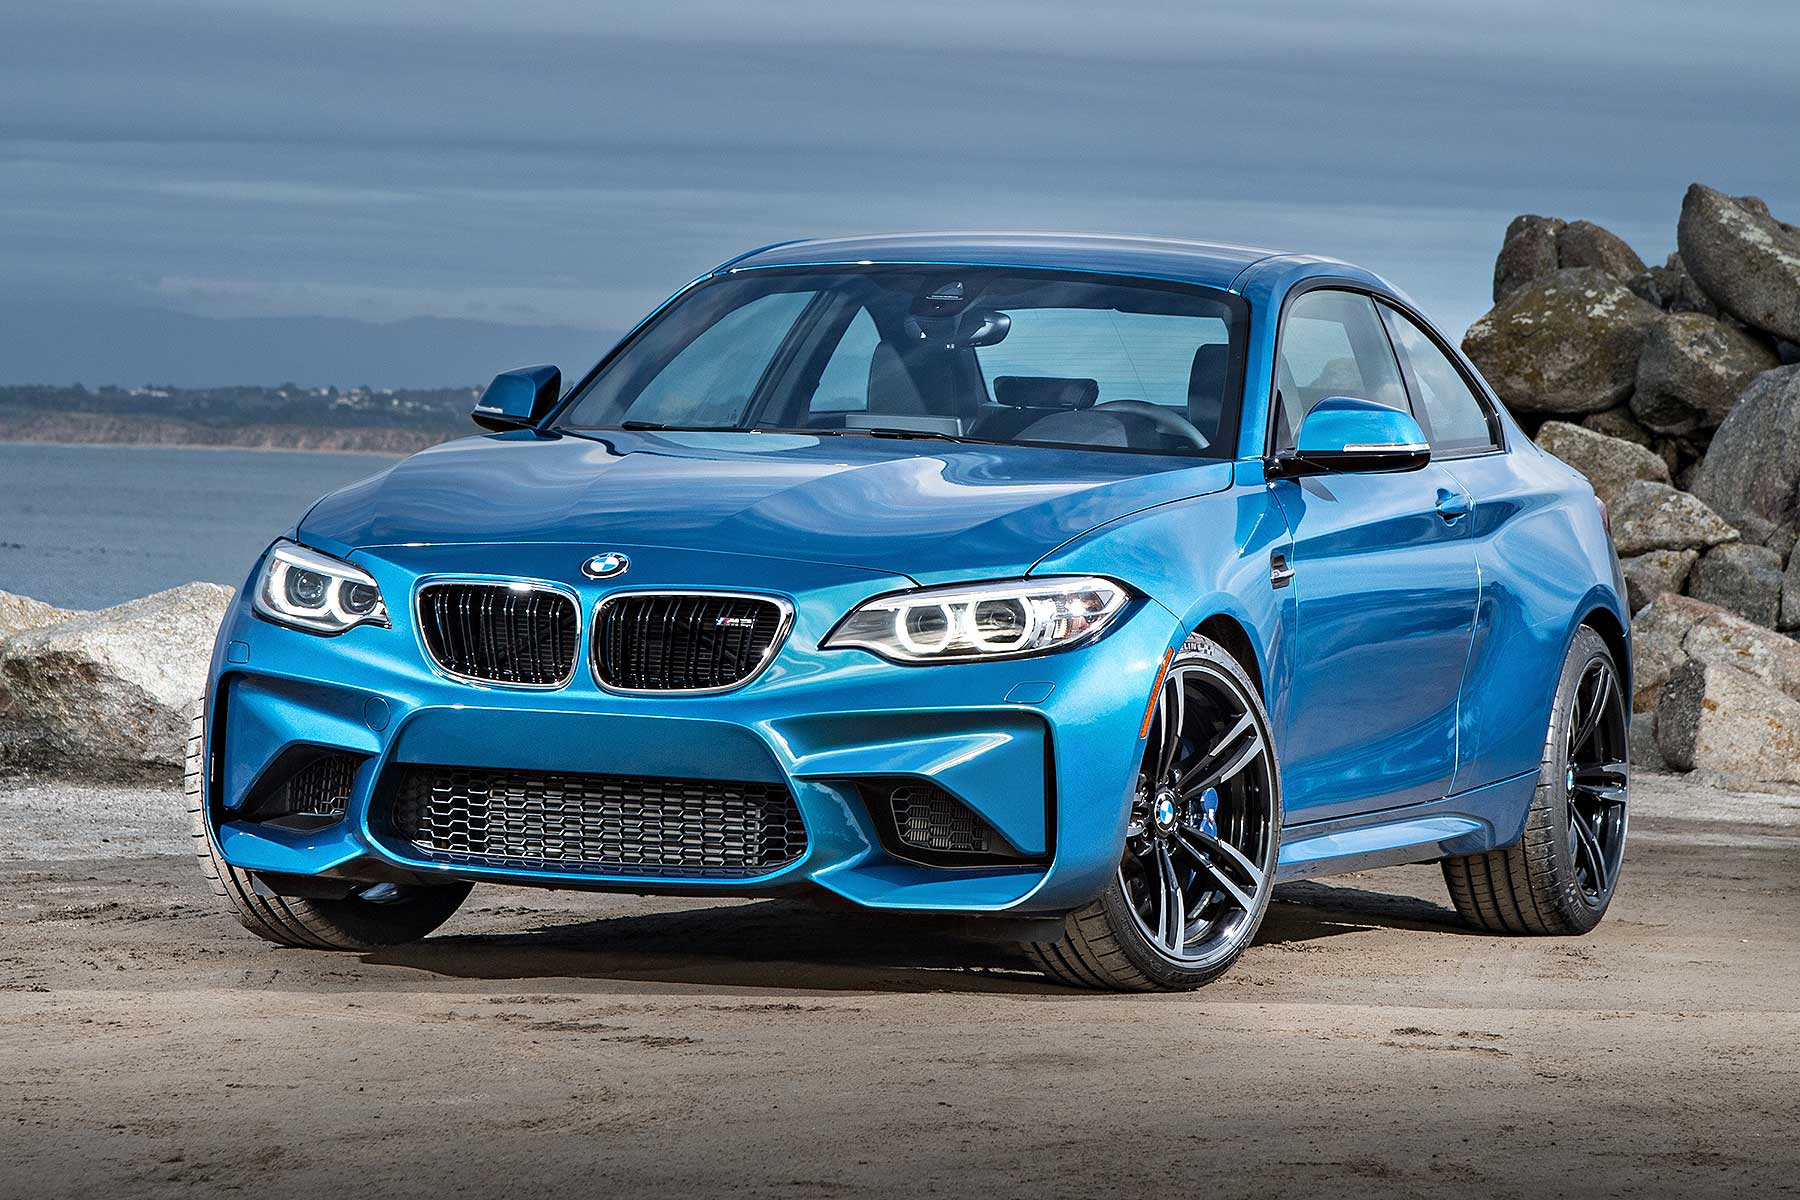 2016 bmw m2 review first drive motoring research. Black Bedroom Furniture Sets. Home Design Ideas